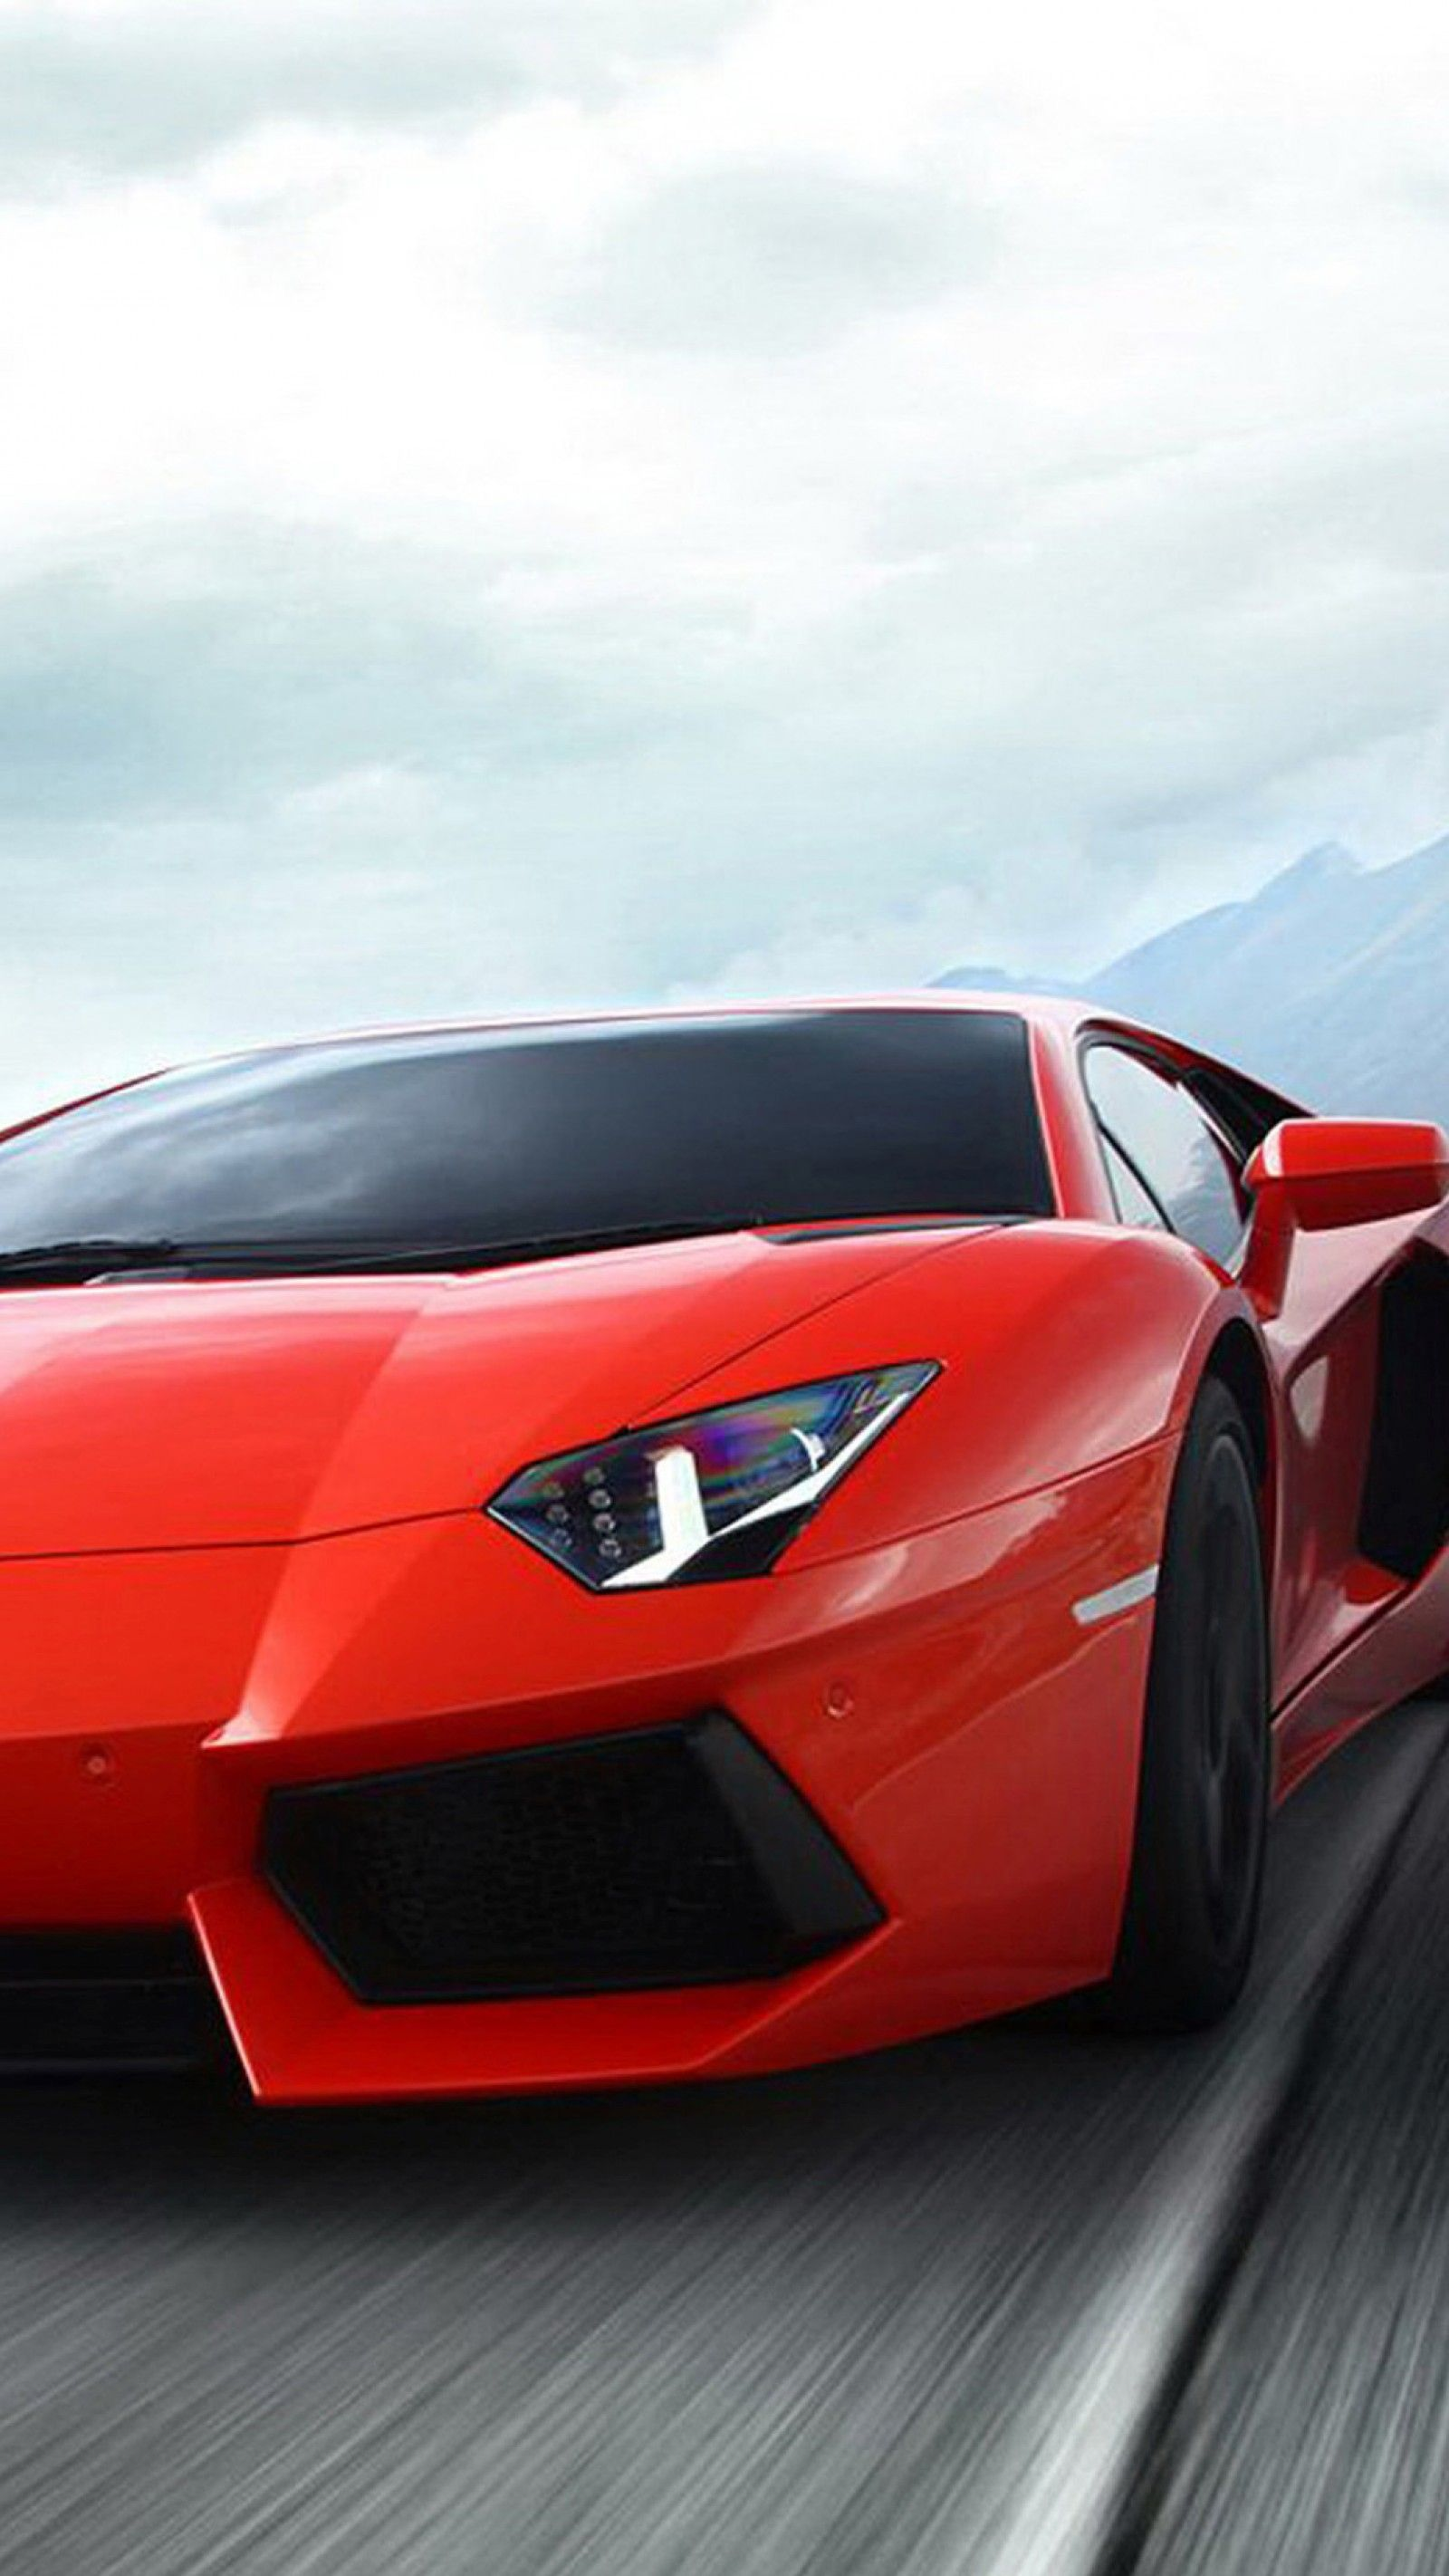 Super Car Iphone Wallpapers On Wallpaperdog